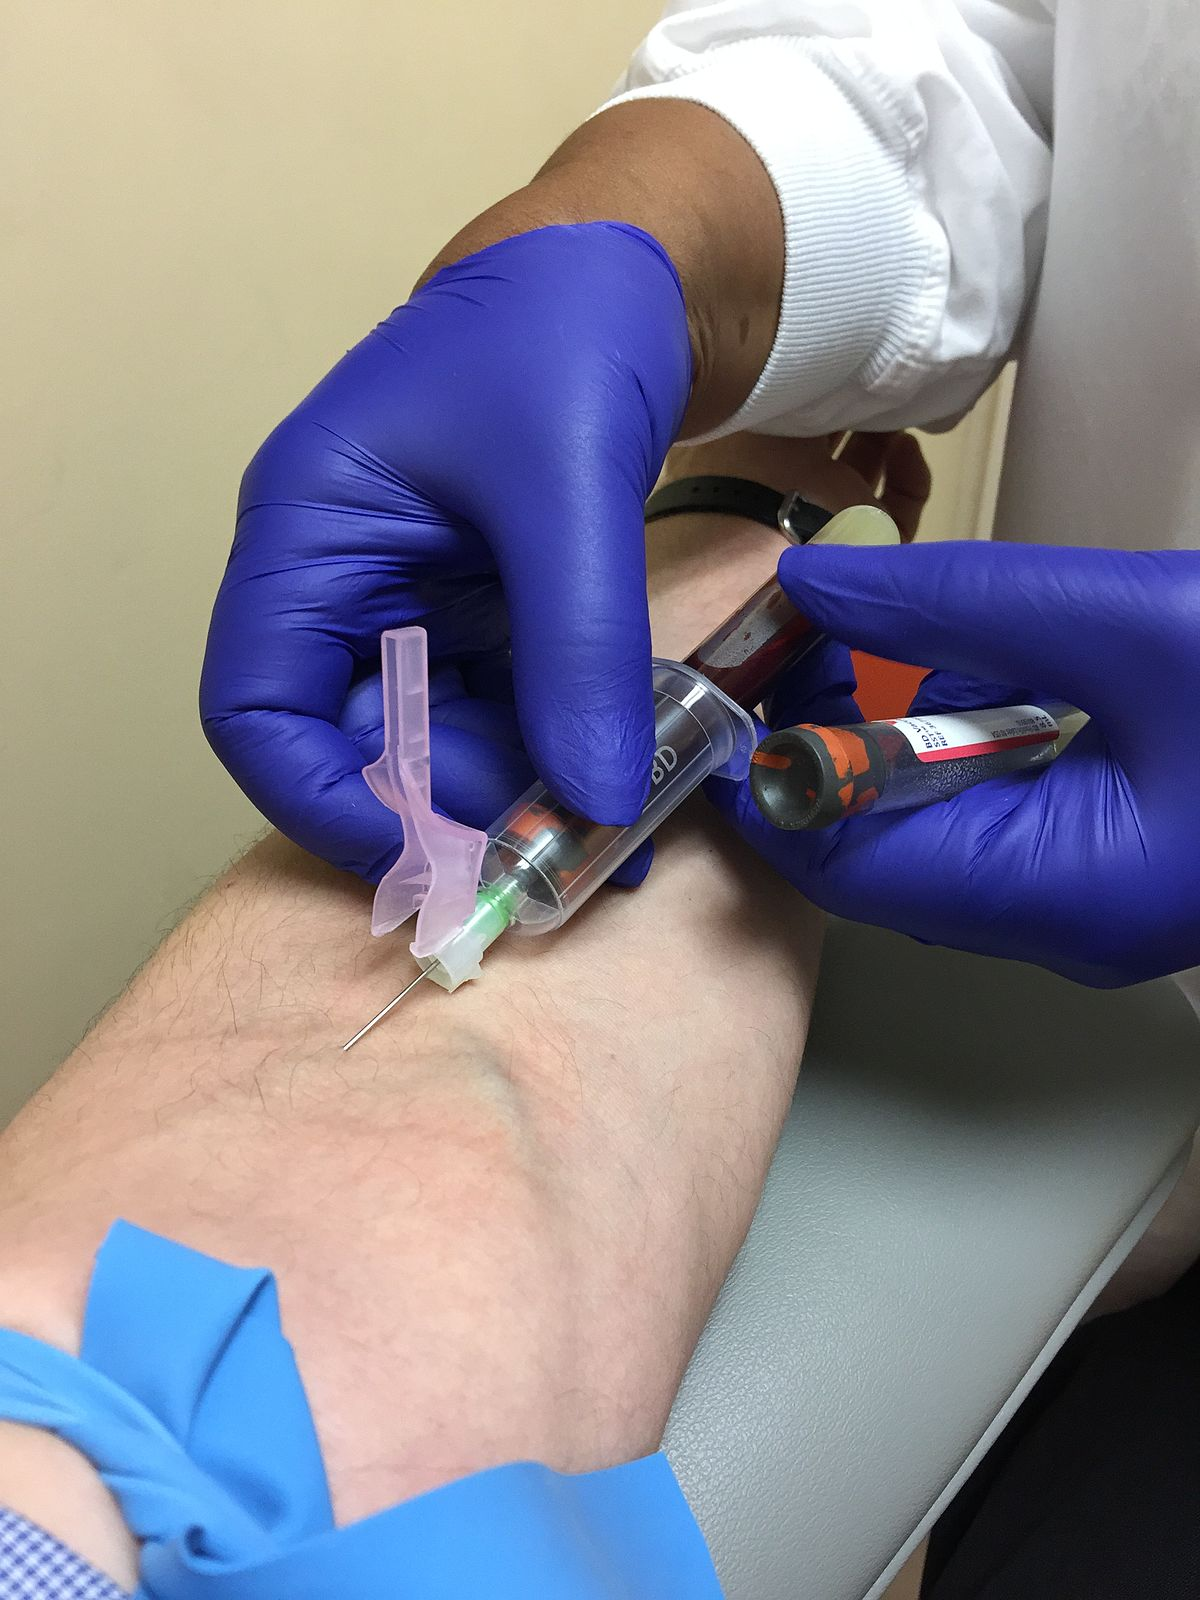 Venipuncture Wikipedia